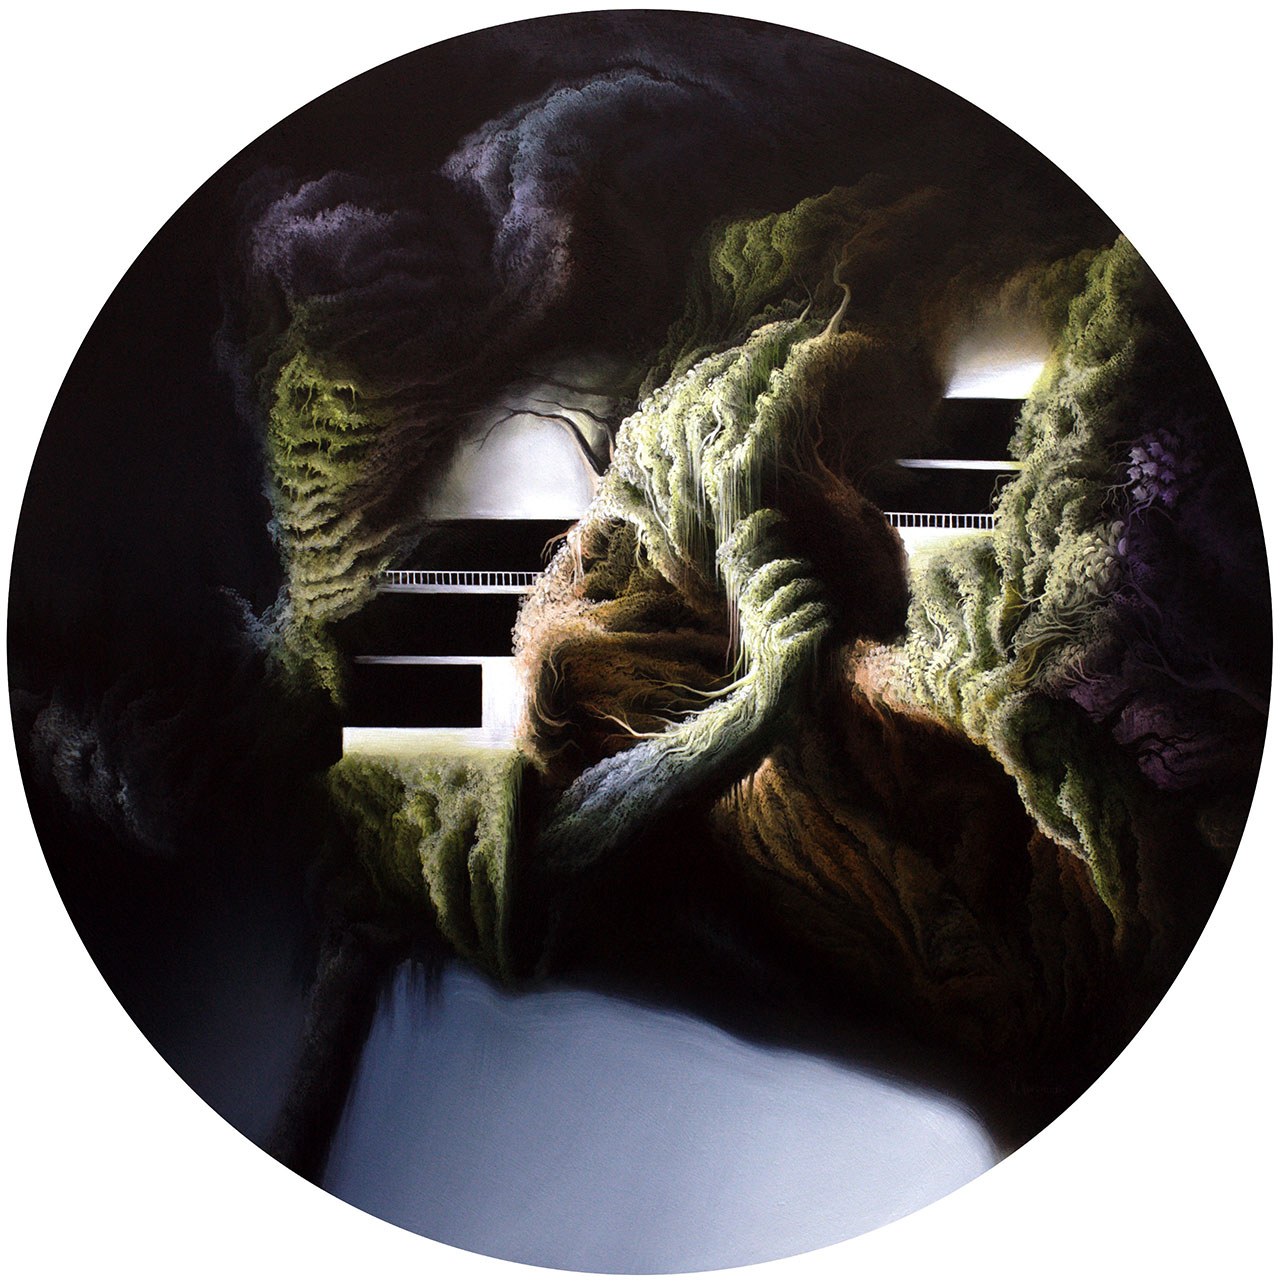 Vasilis Avramidis, Rooms, 2015, 50cm diameter, oil on wood.